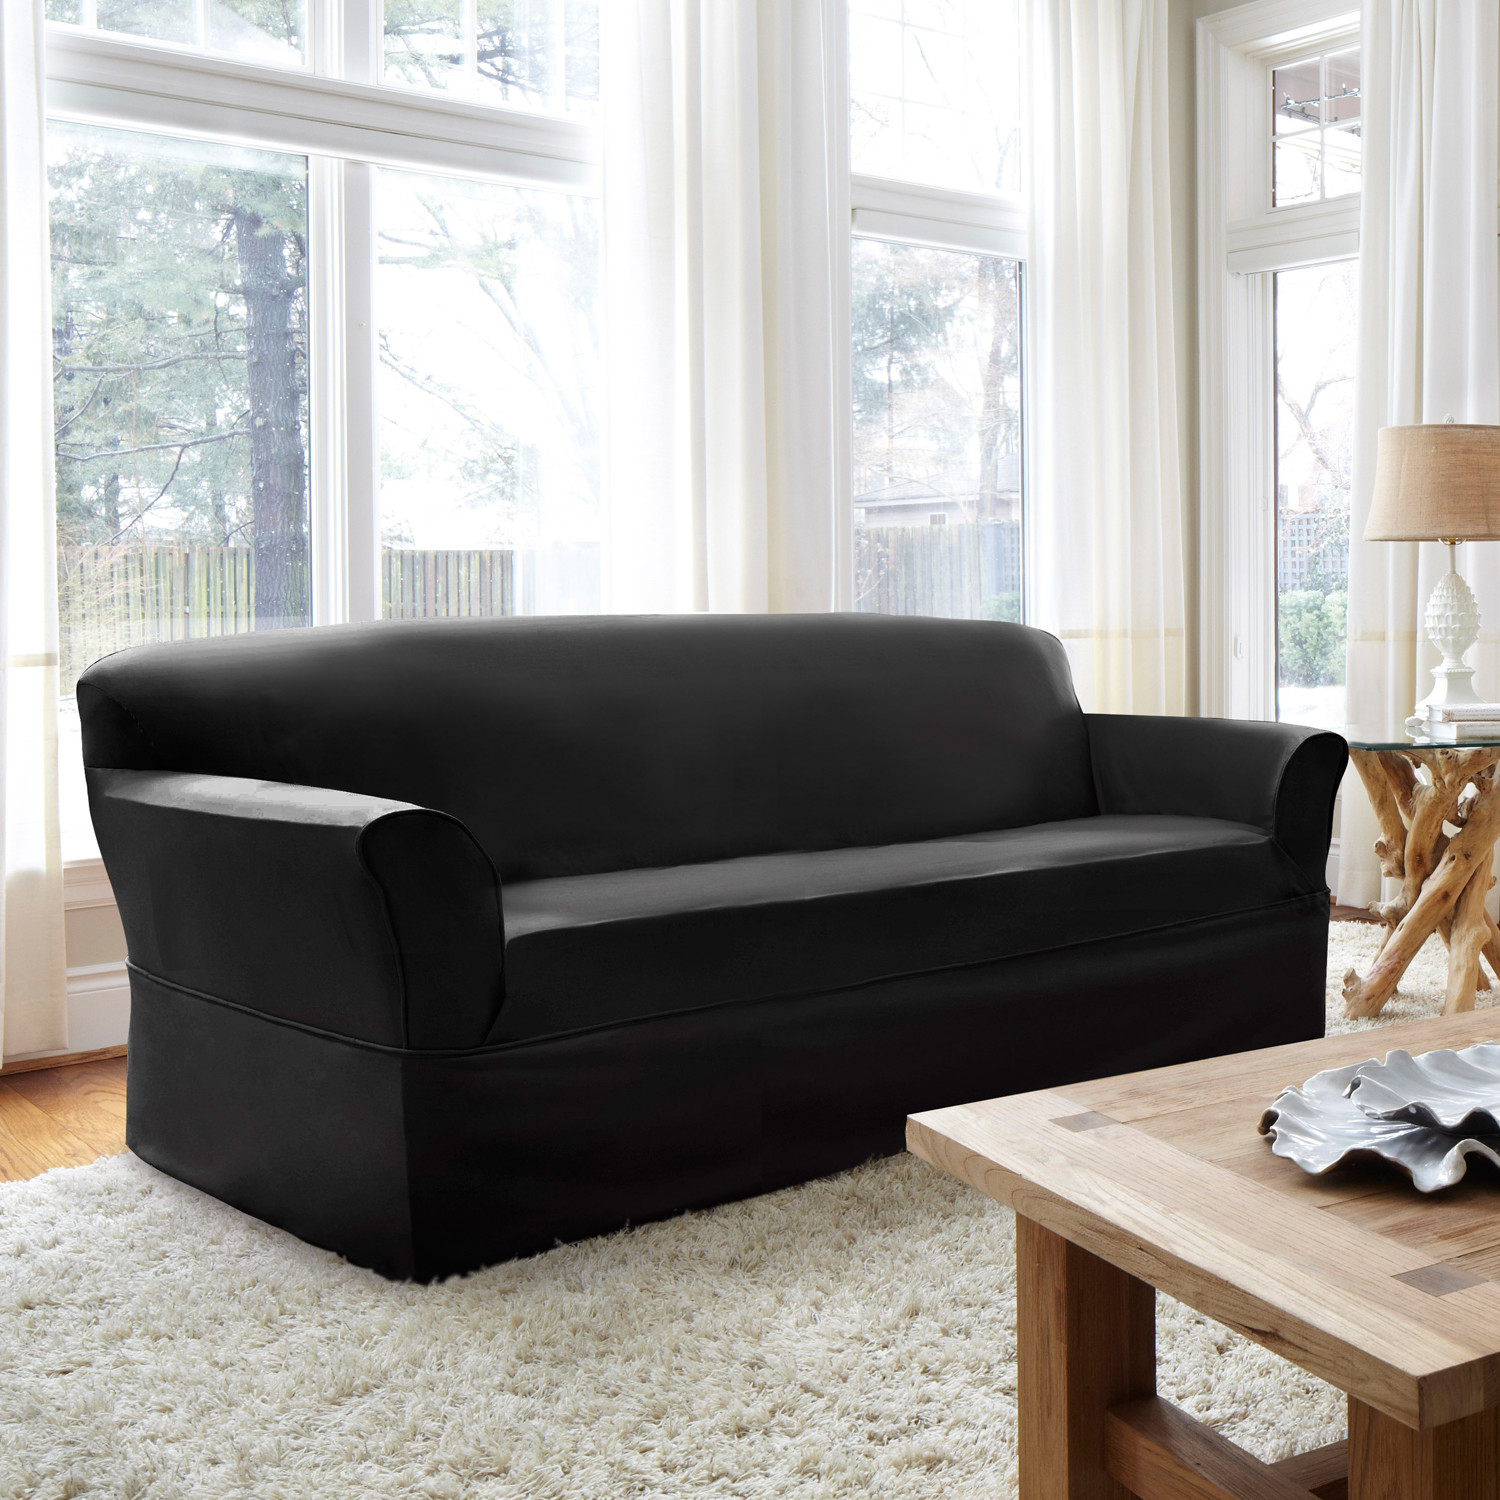 Interesting couch covers for sectionals  for living room with furniture covers for sectionals